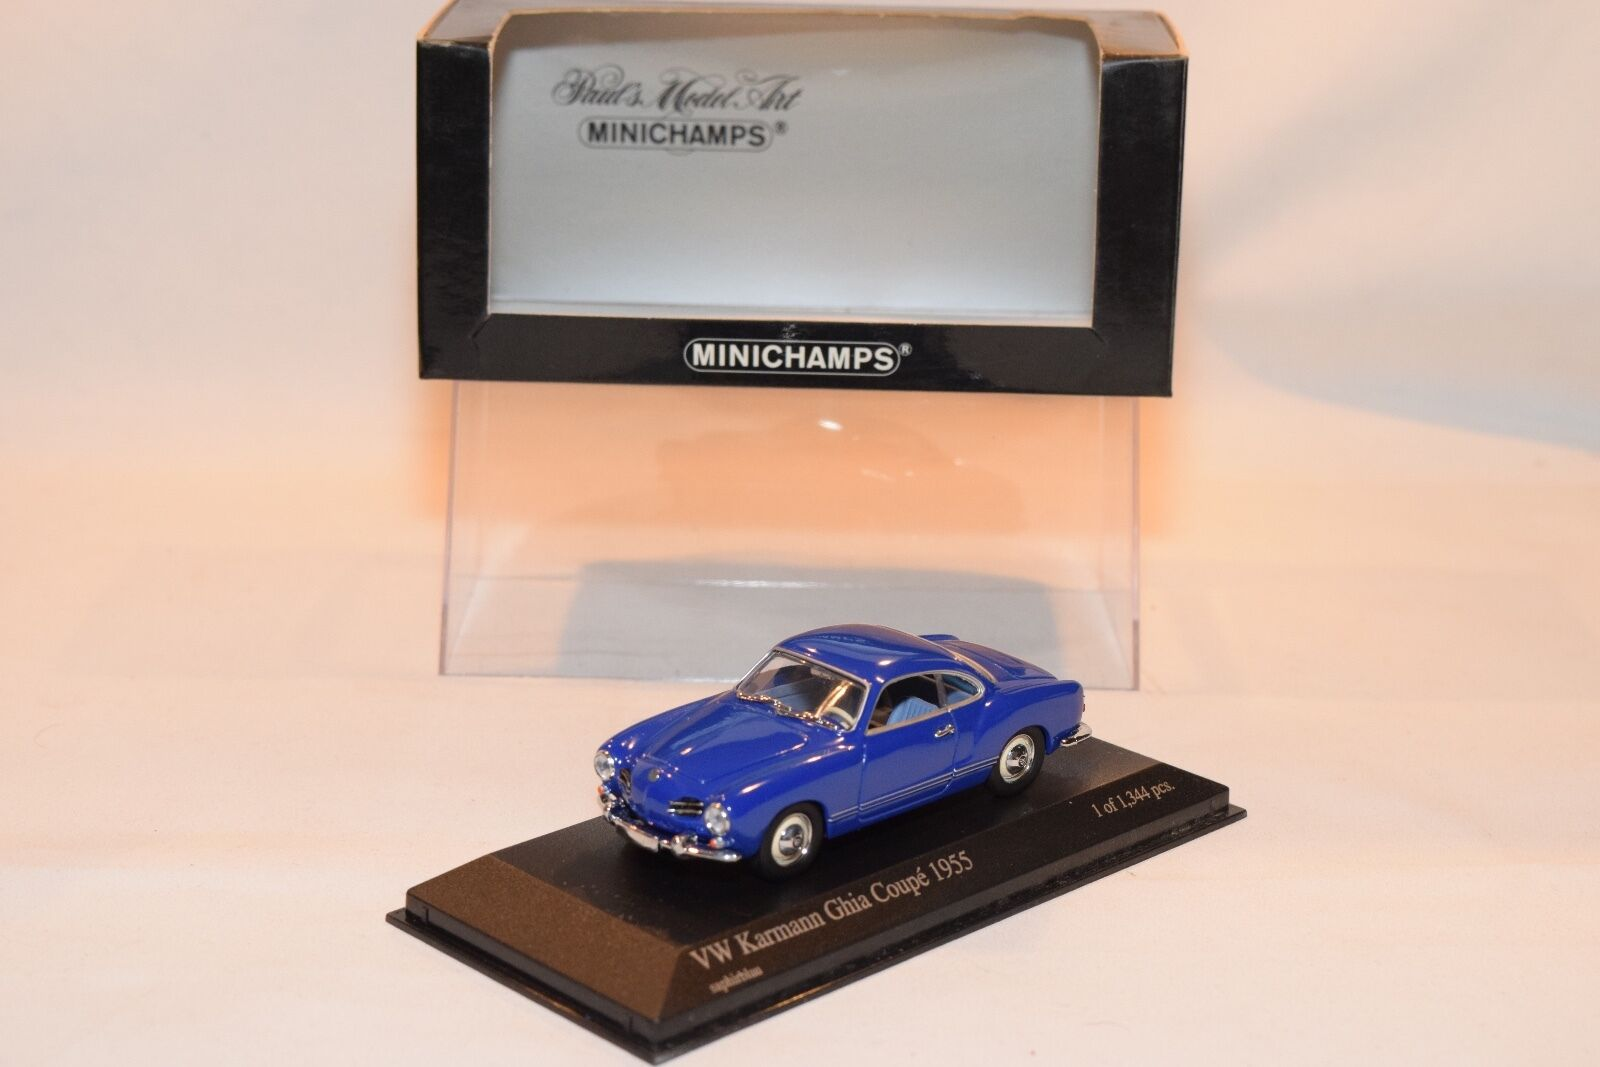 MINICHAMPS VW VOLKSWAGEN KARMANN GHIA COUPE 1955 SAPHIRblue blueE MINT BOXED